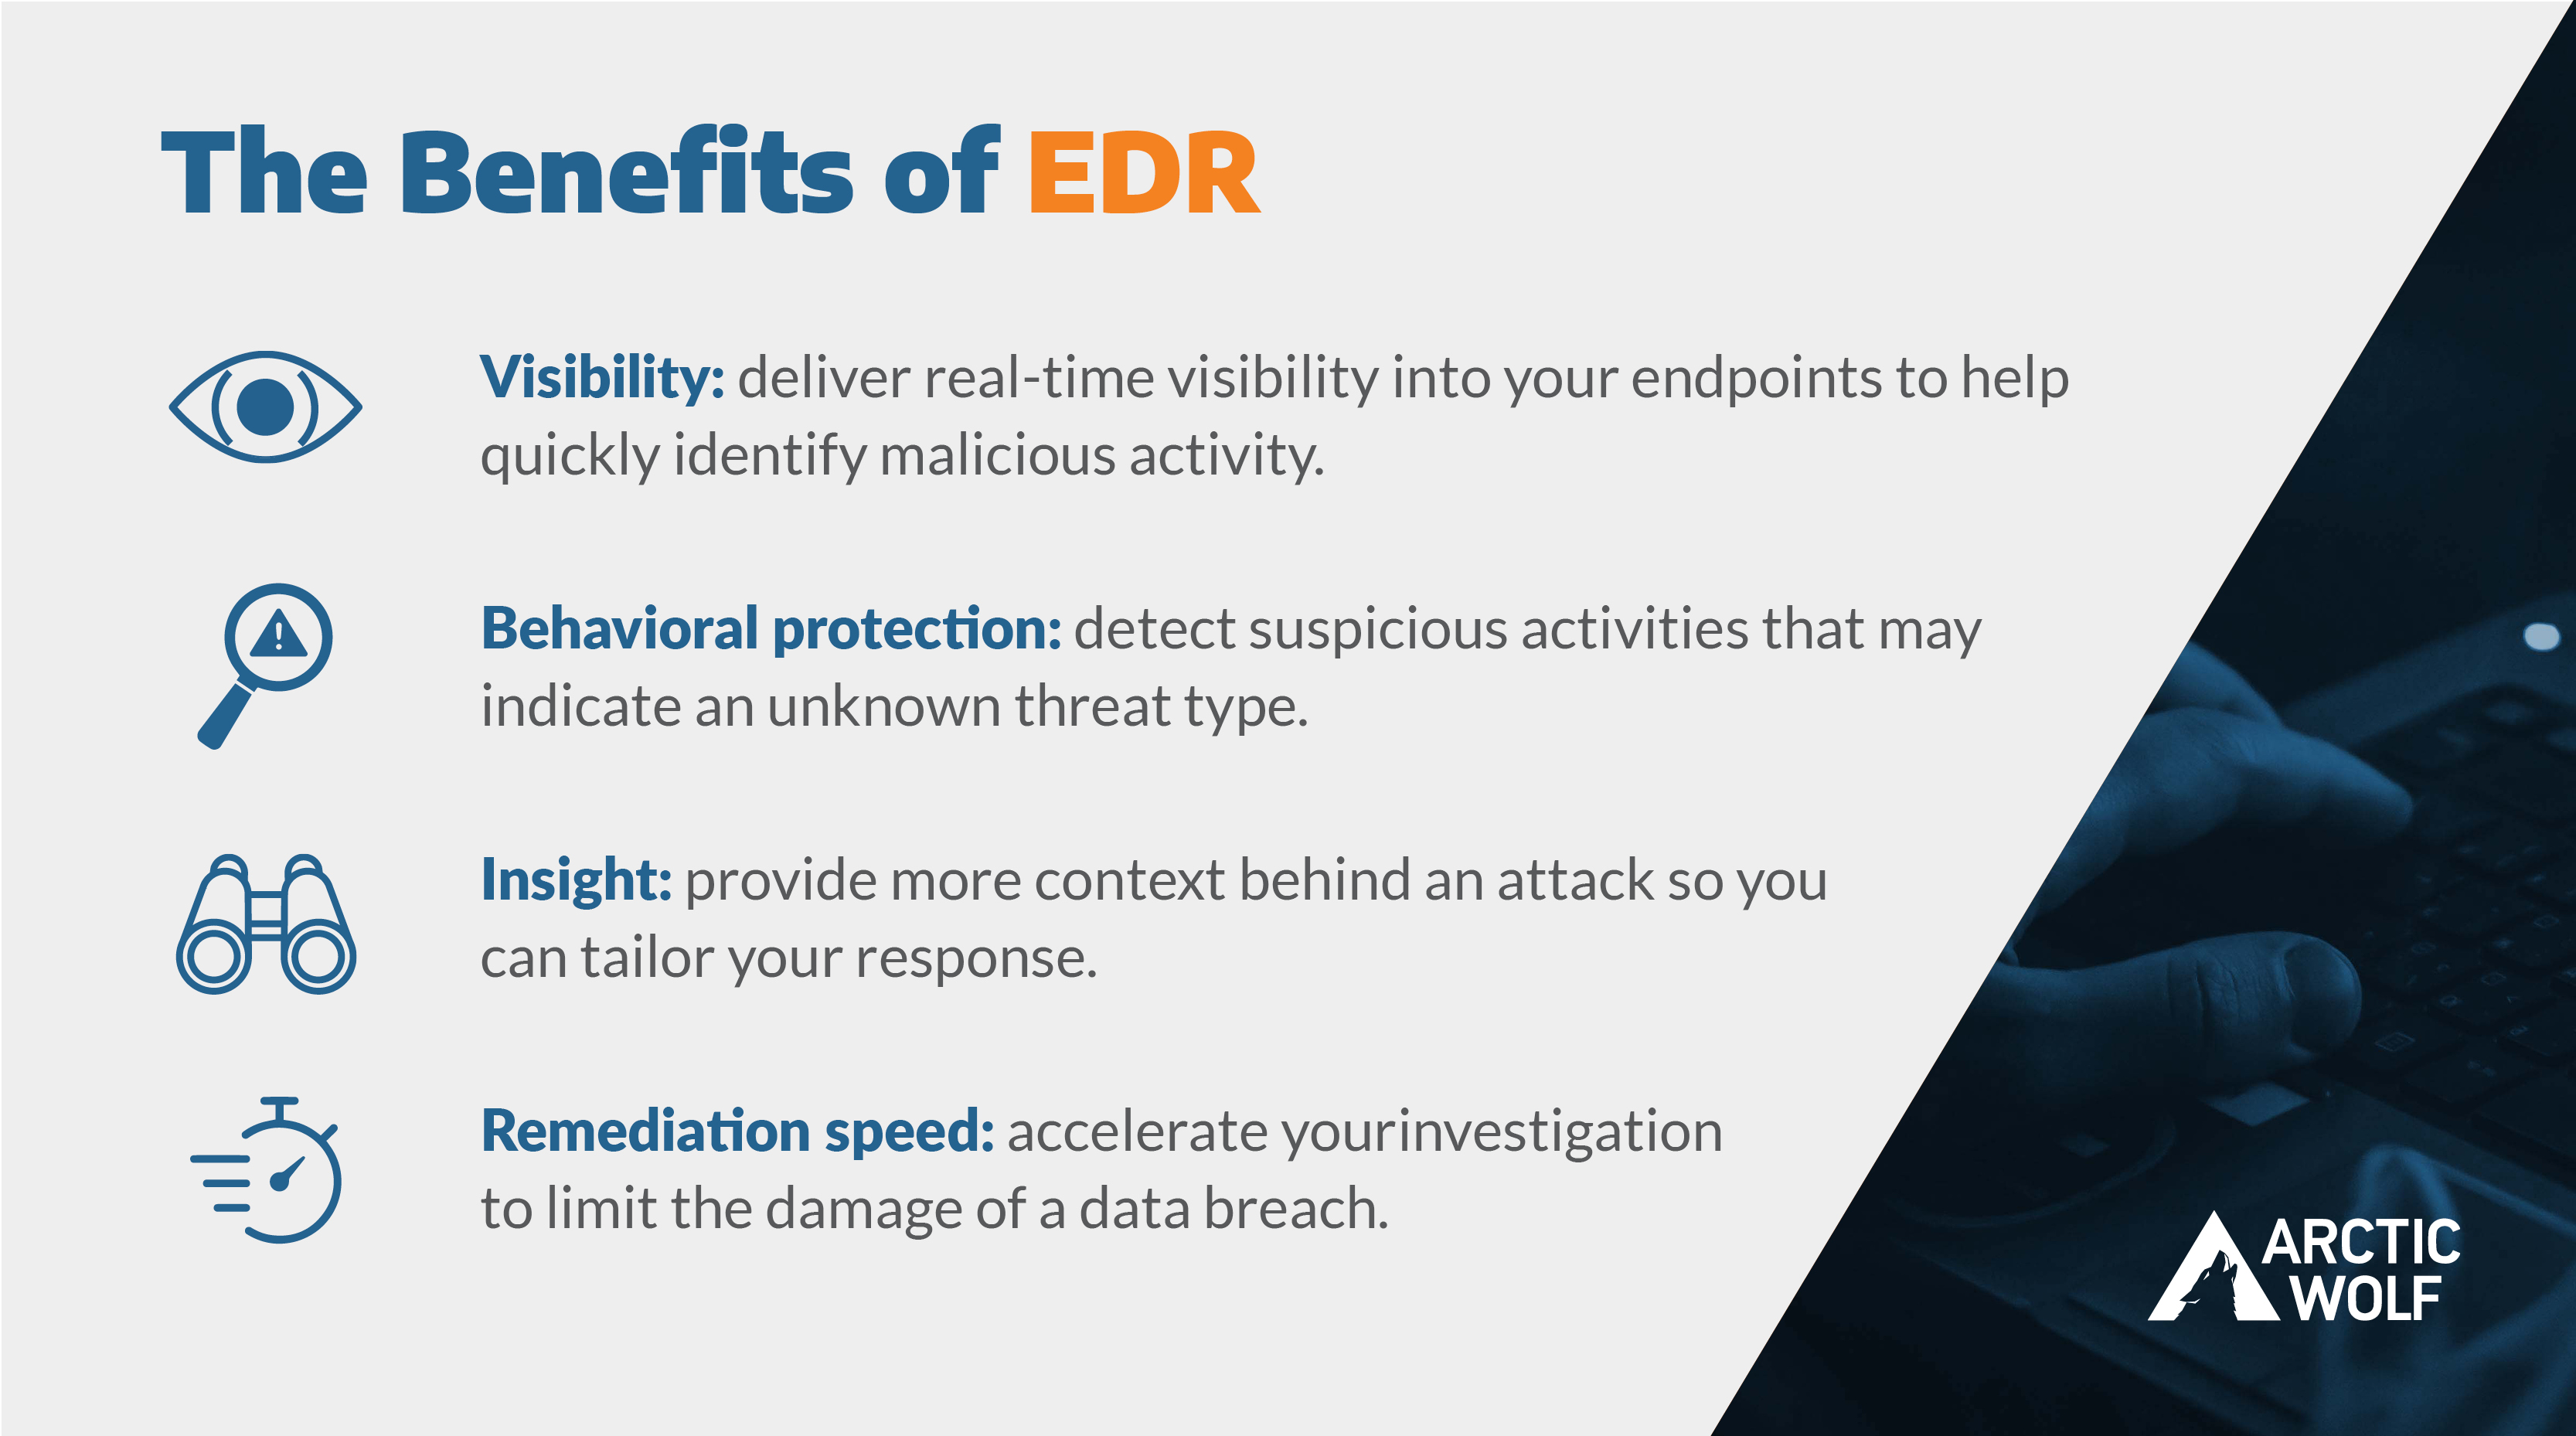 Graphic of The Benefits of EDR with eye icon, magnifying glass, binoculars, and a stopwatch to highlight the points listed directly above.